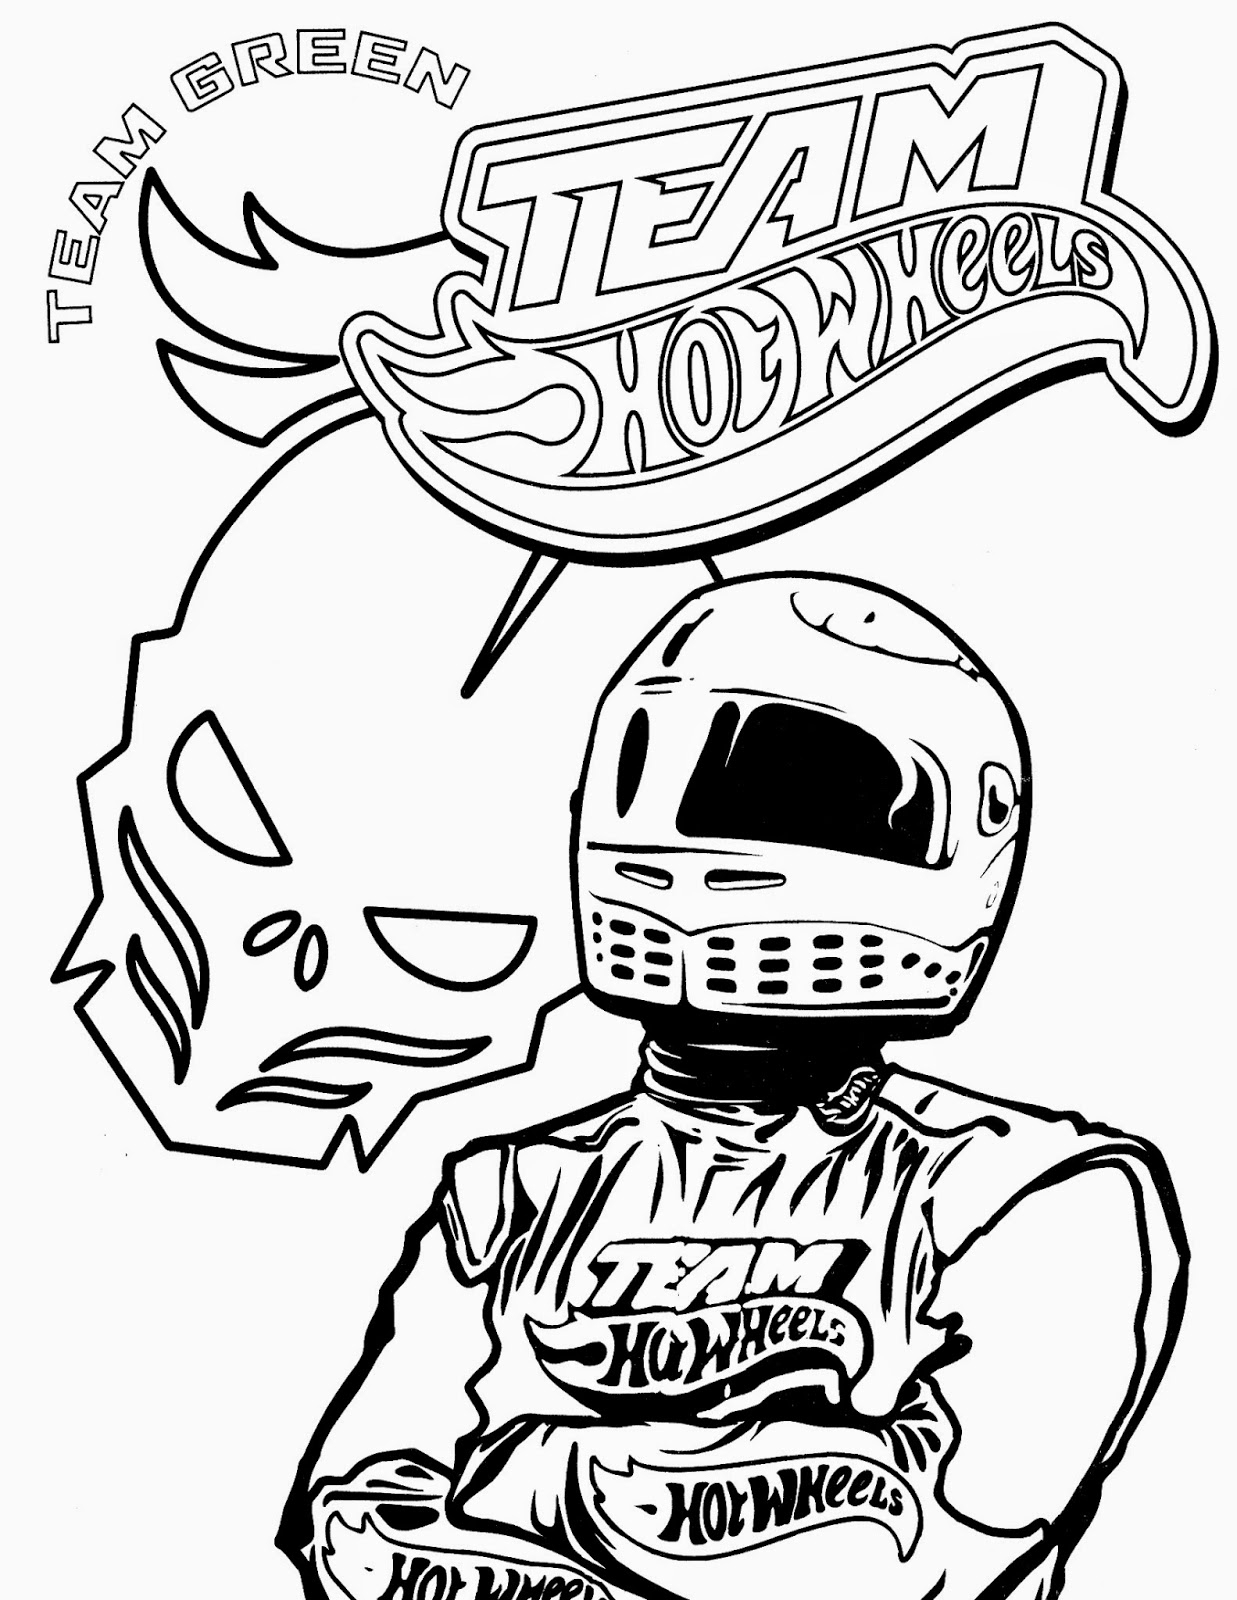 Hot Wheels Racing League Hot Wheels Coloring Pages Set 4 to Print ...